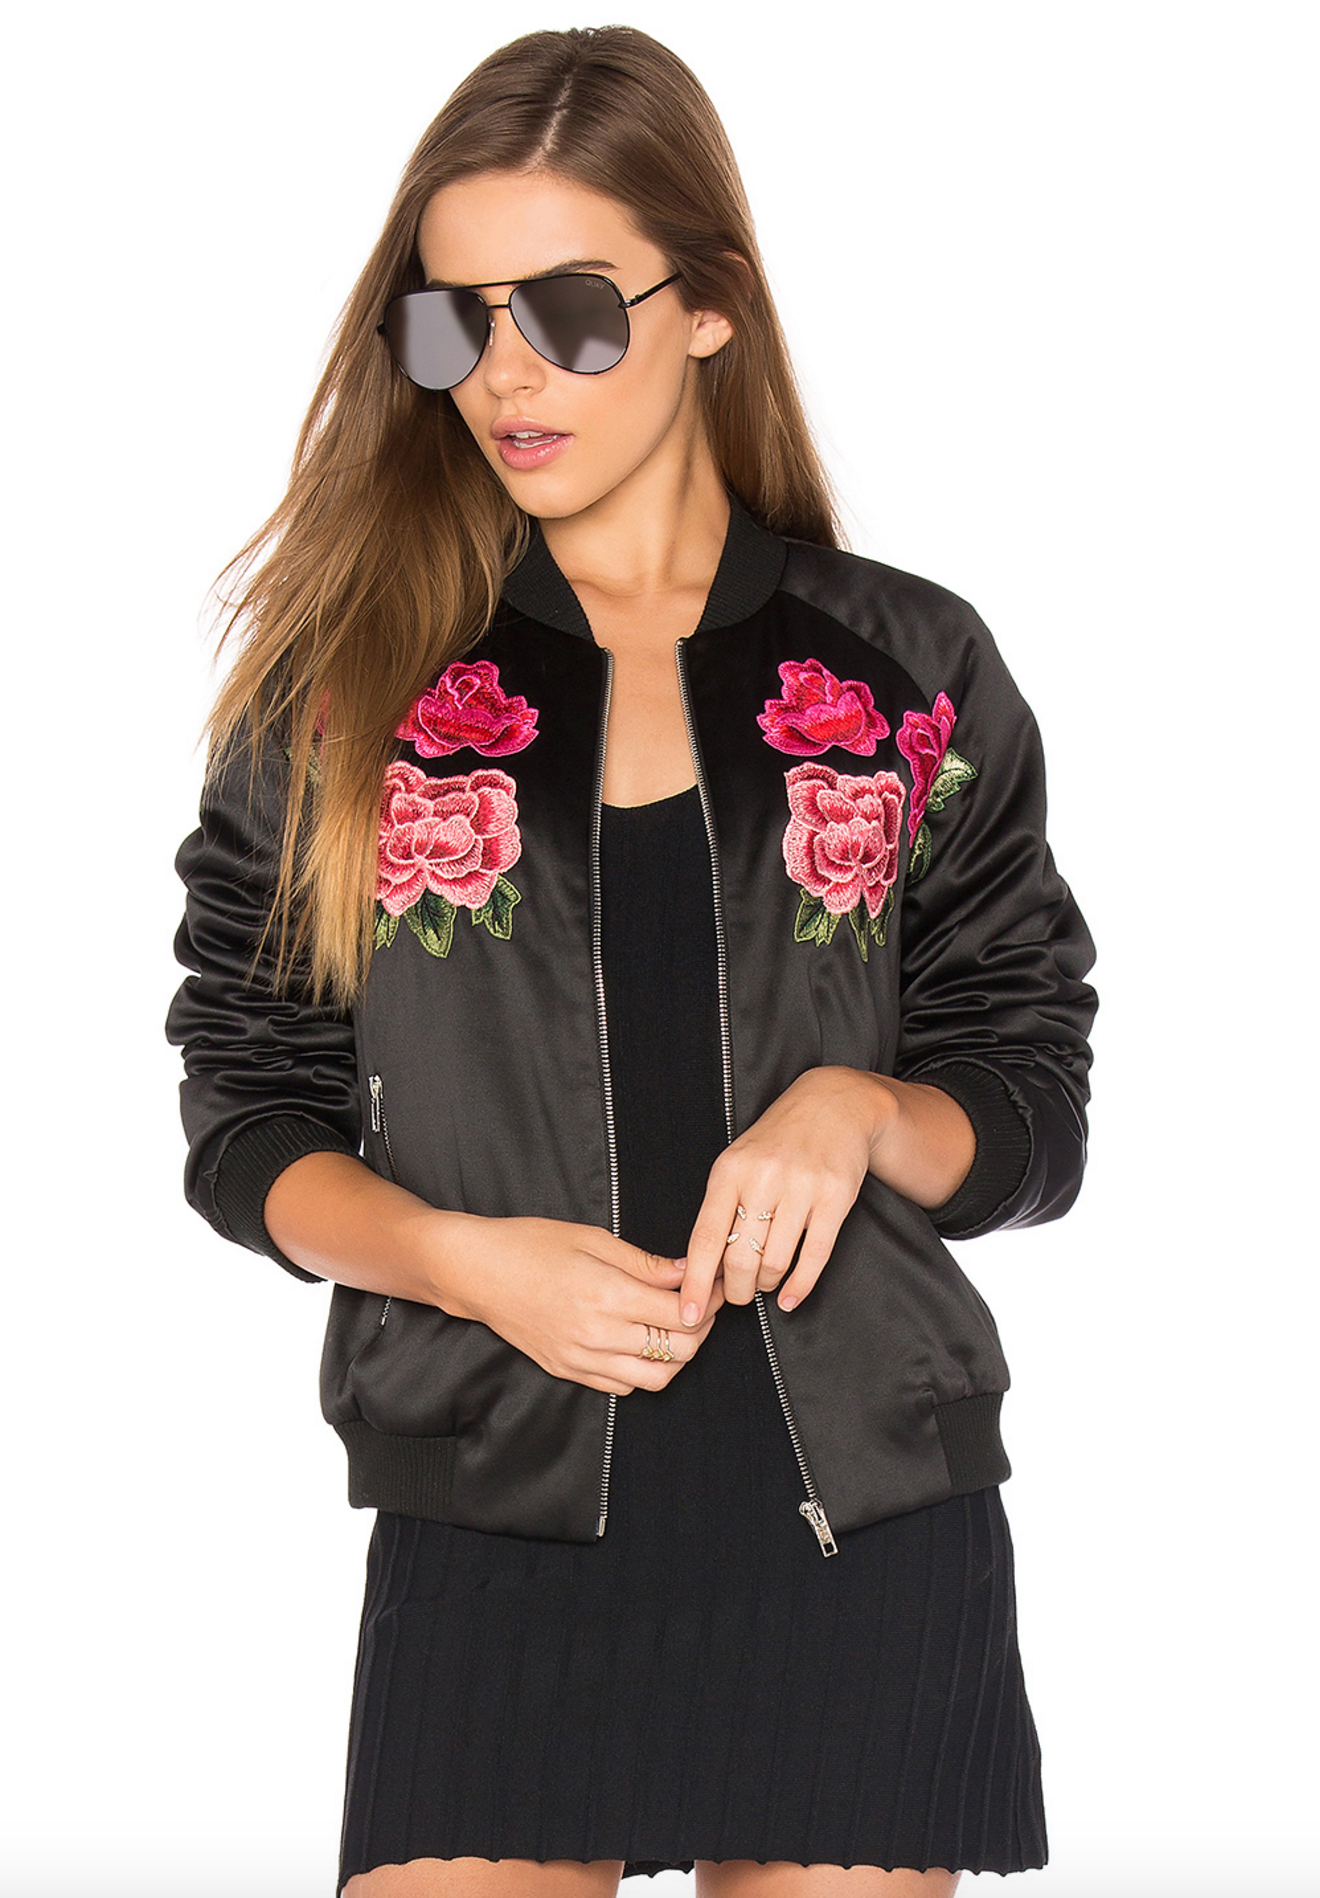 Endless Rose floral embroidered bomber $164